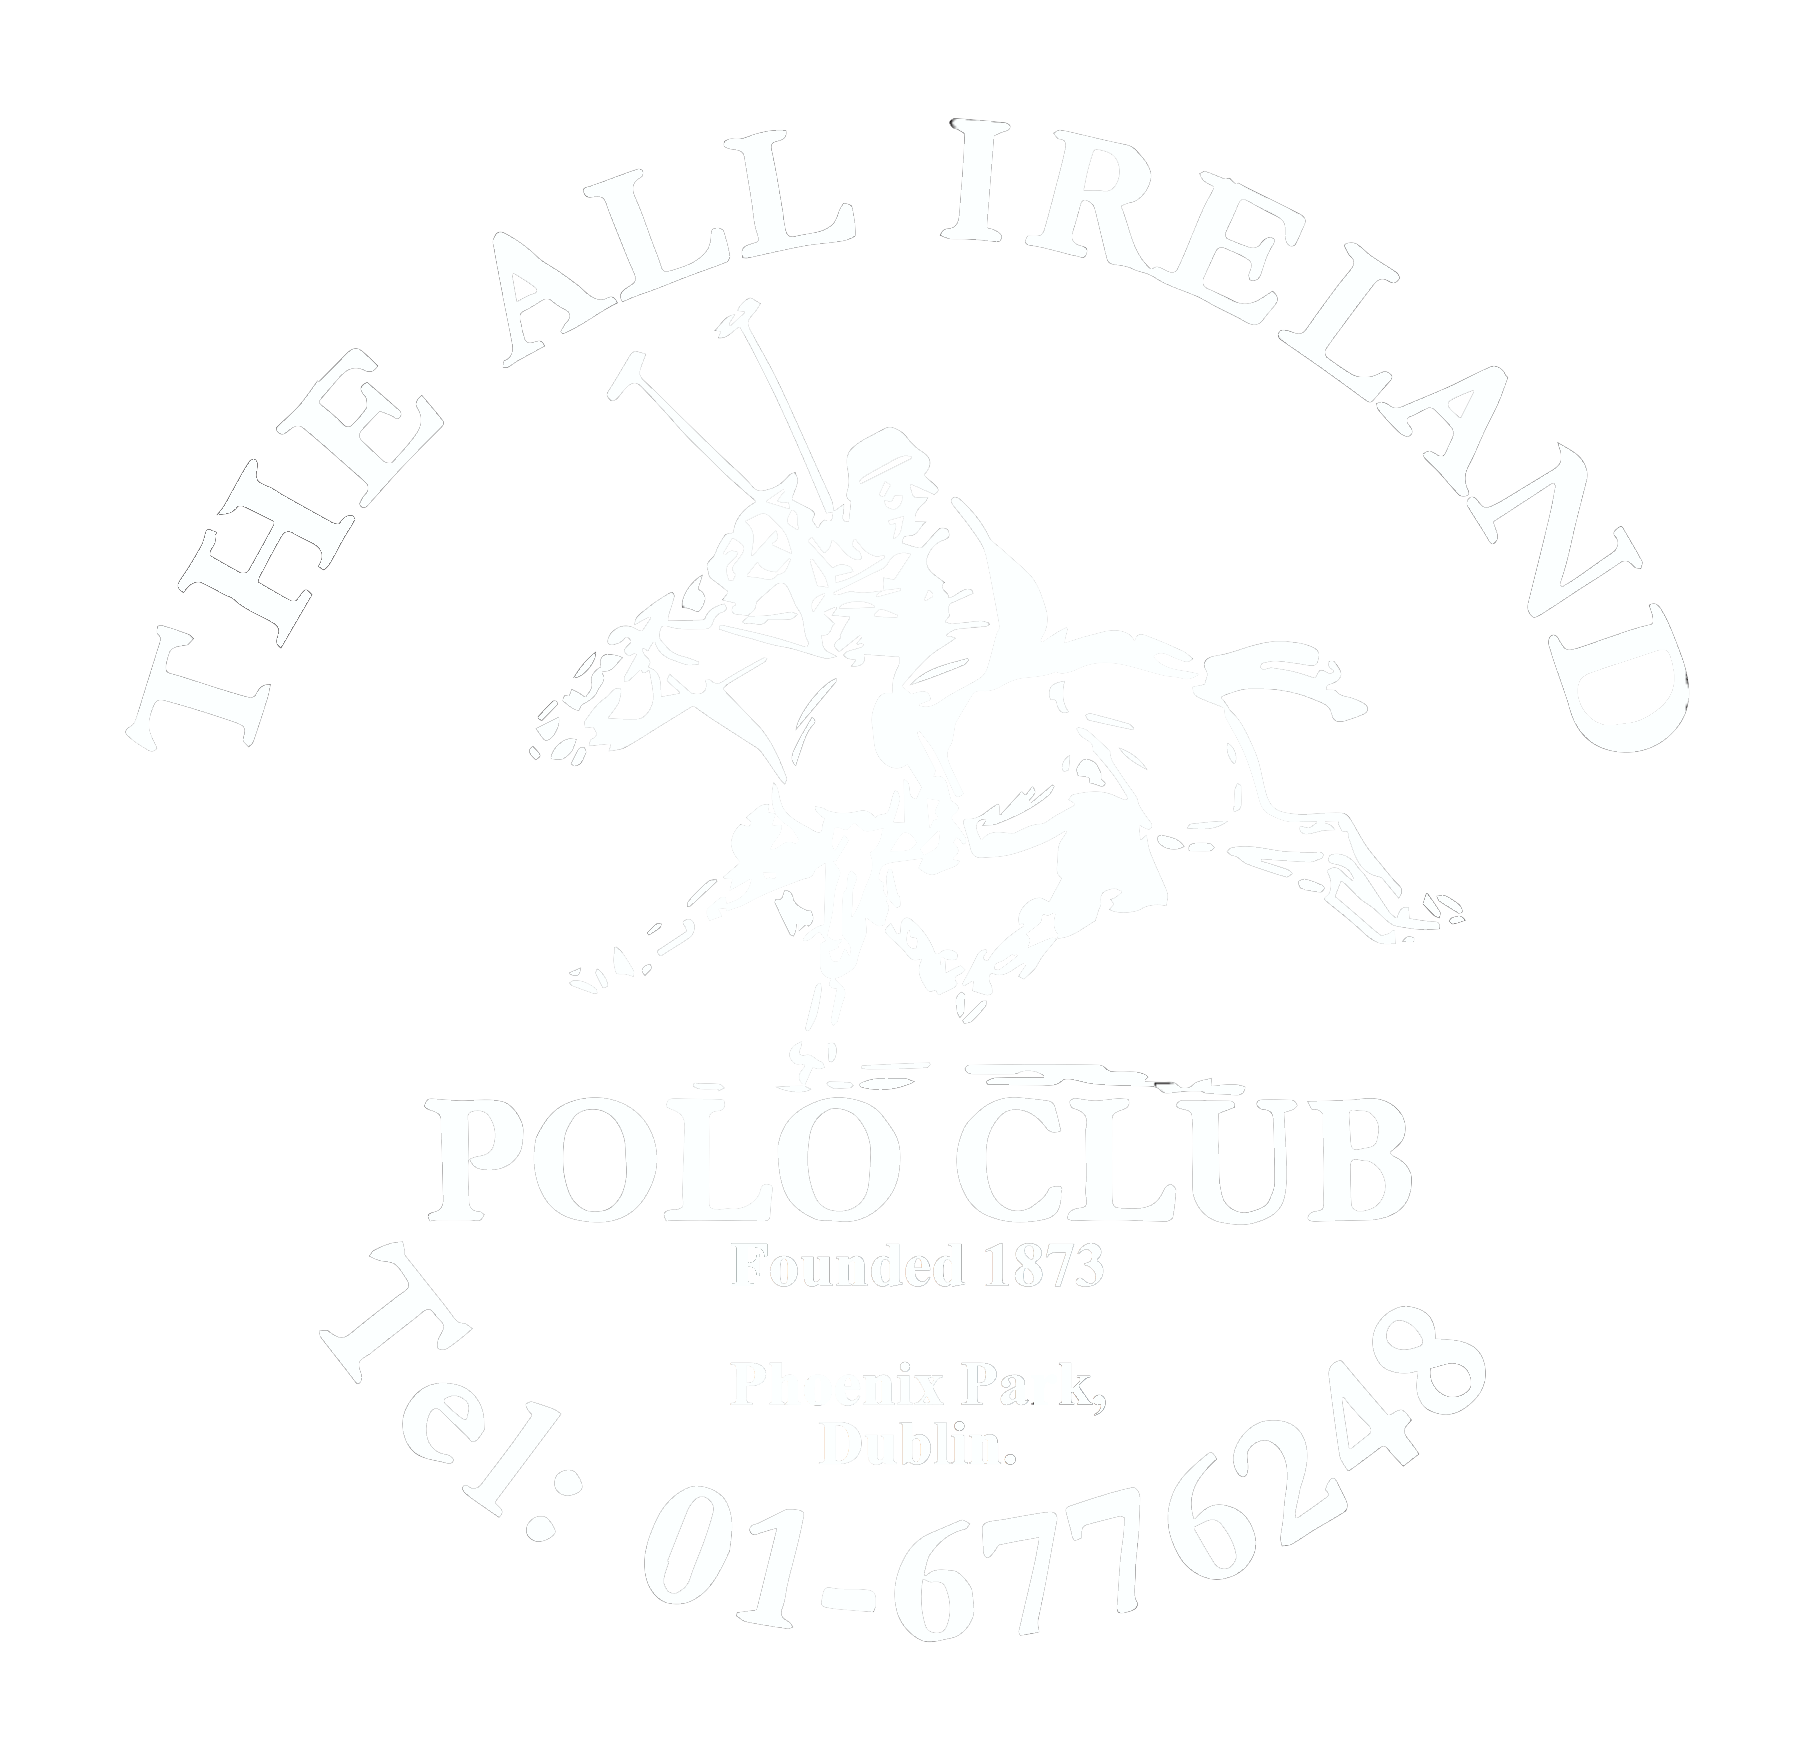 All Ireland Polo Club